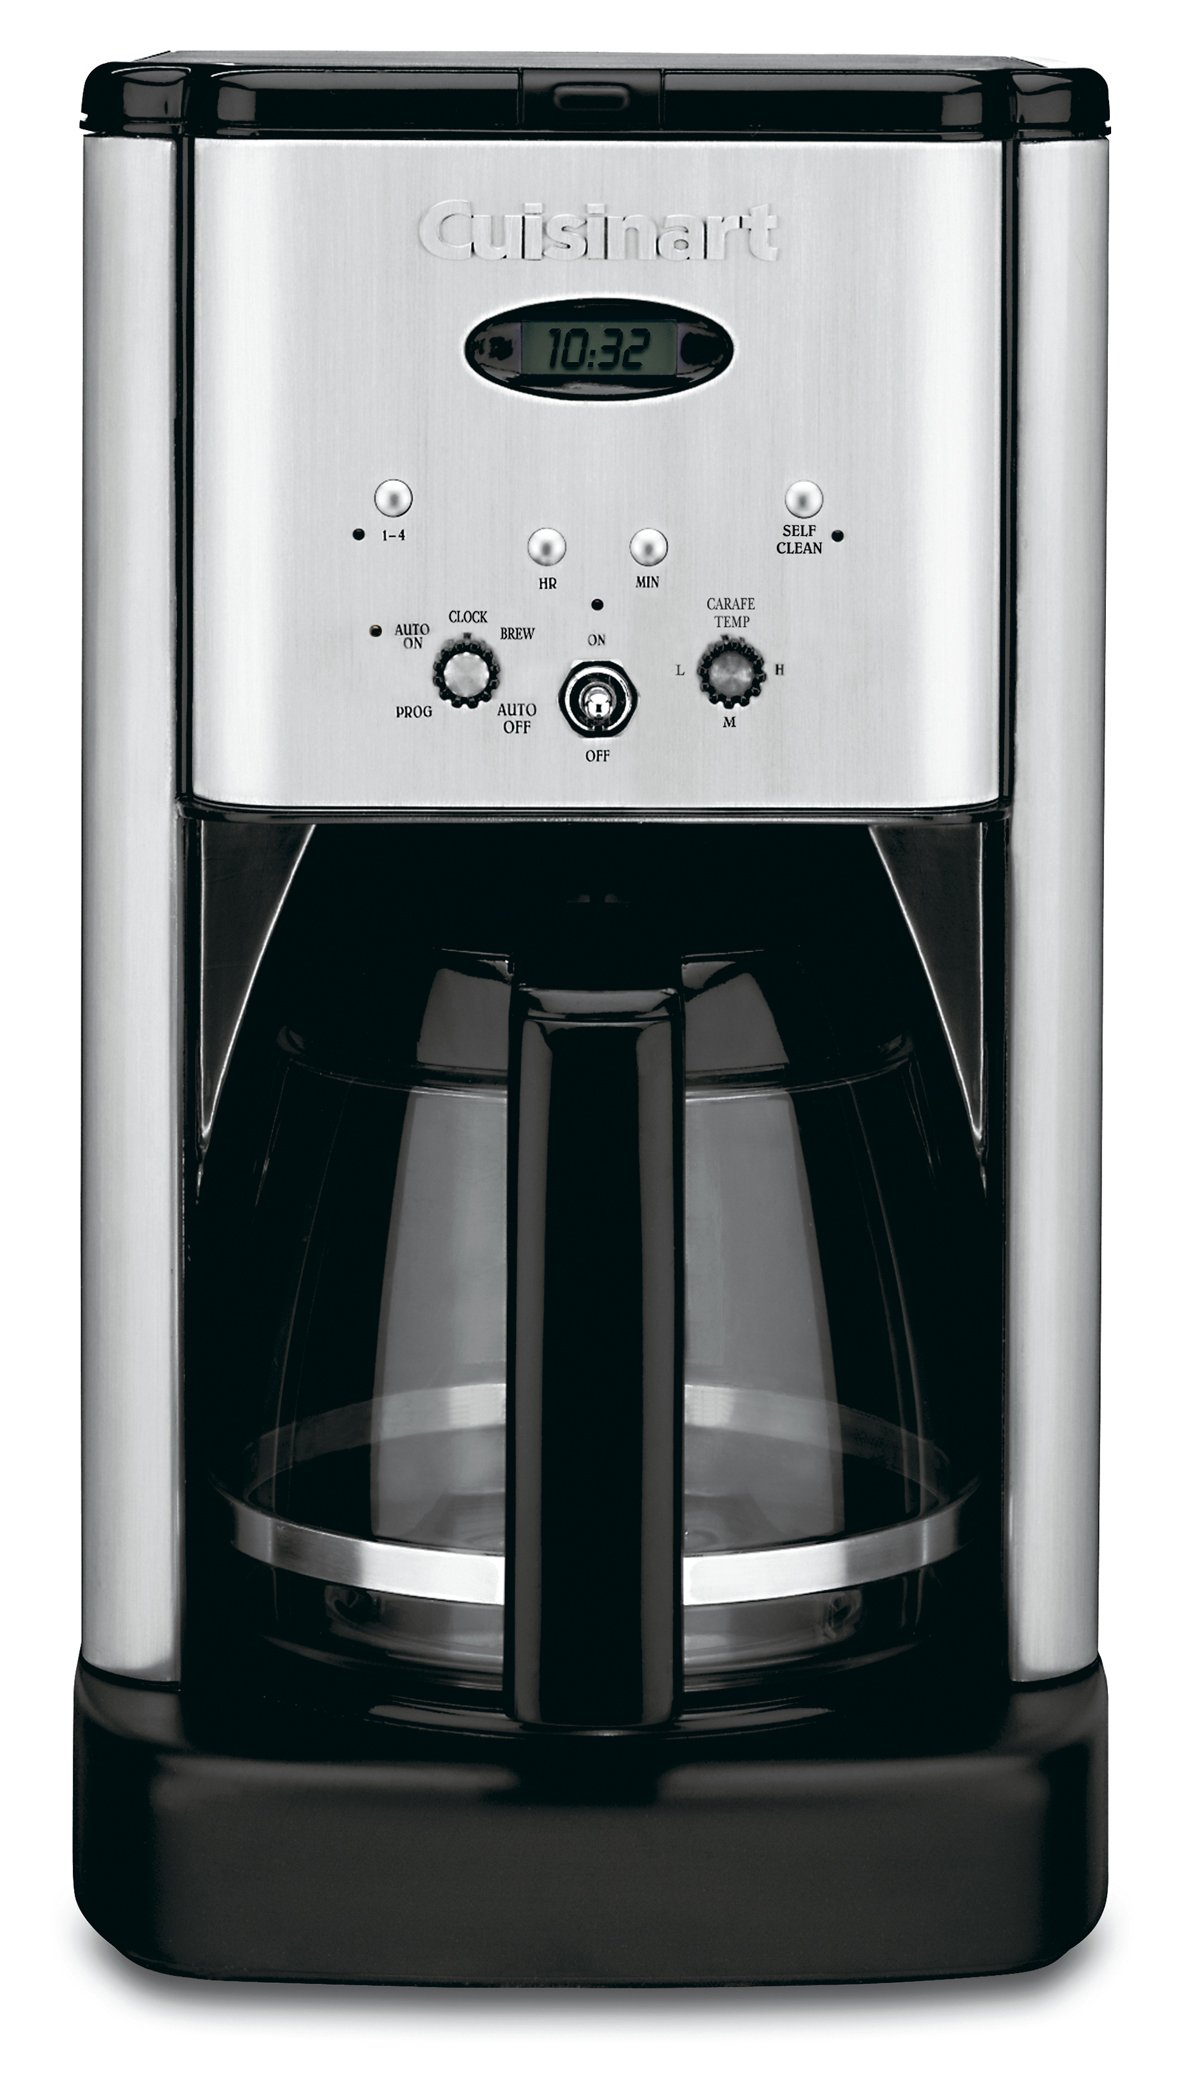 Cuisinart DCC-1200 Brew Central 12 Cup Programmable Coffeemaker, Black/Silver by Cuisinart